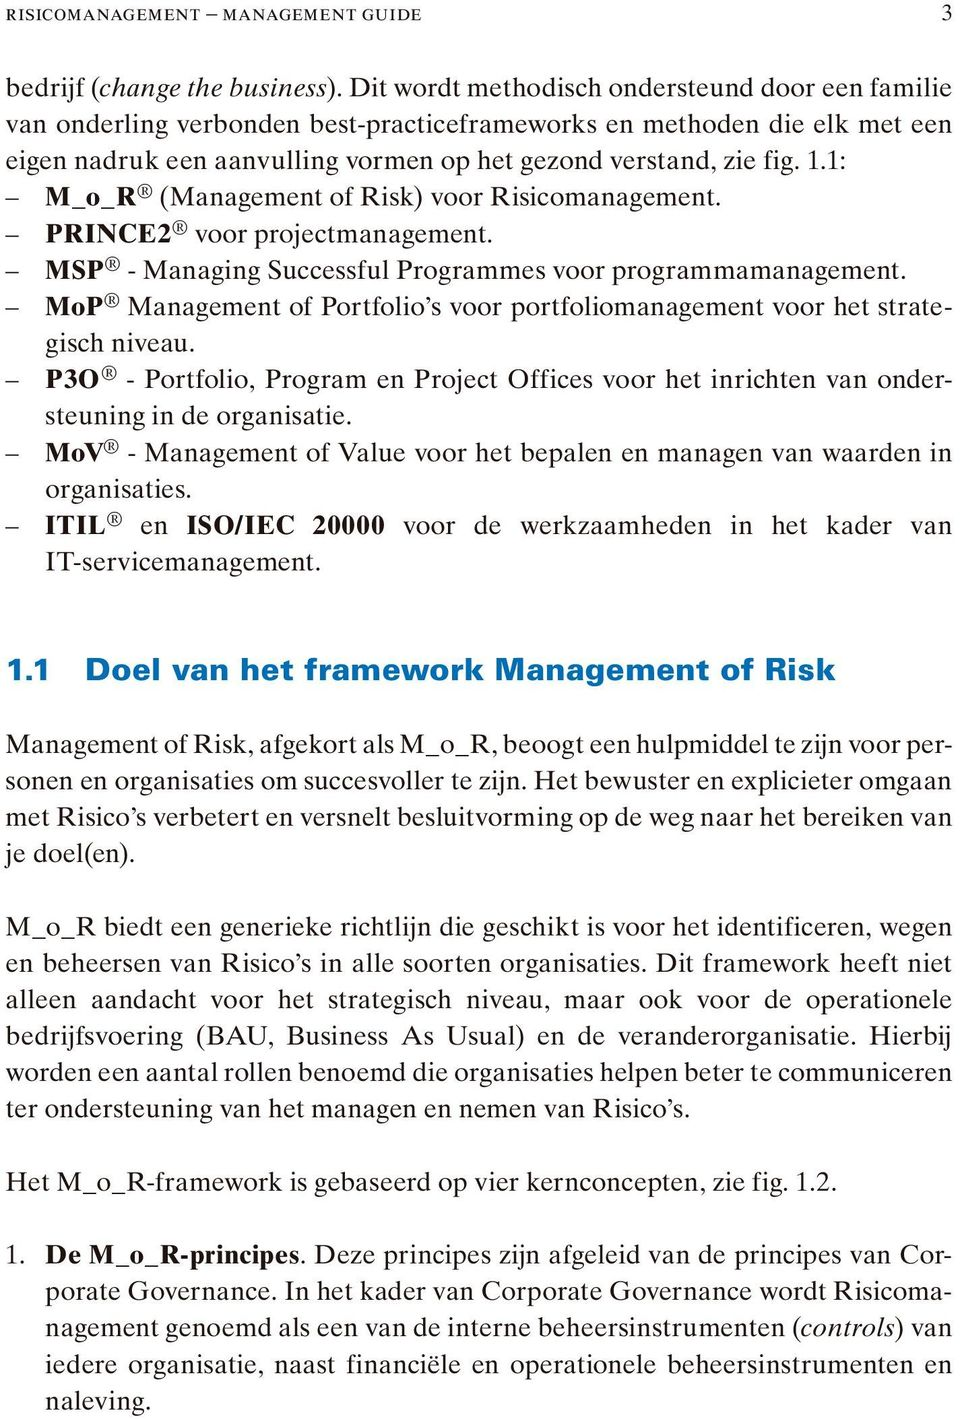 1: M_o_R (Management of Risk) voor Risicomanagement. PRINCE2 voor projectmanagement. MSP - Managing Successful Programmes voor programmamanagement.